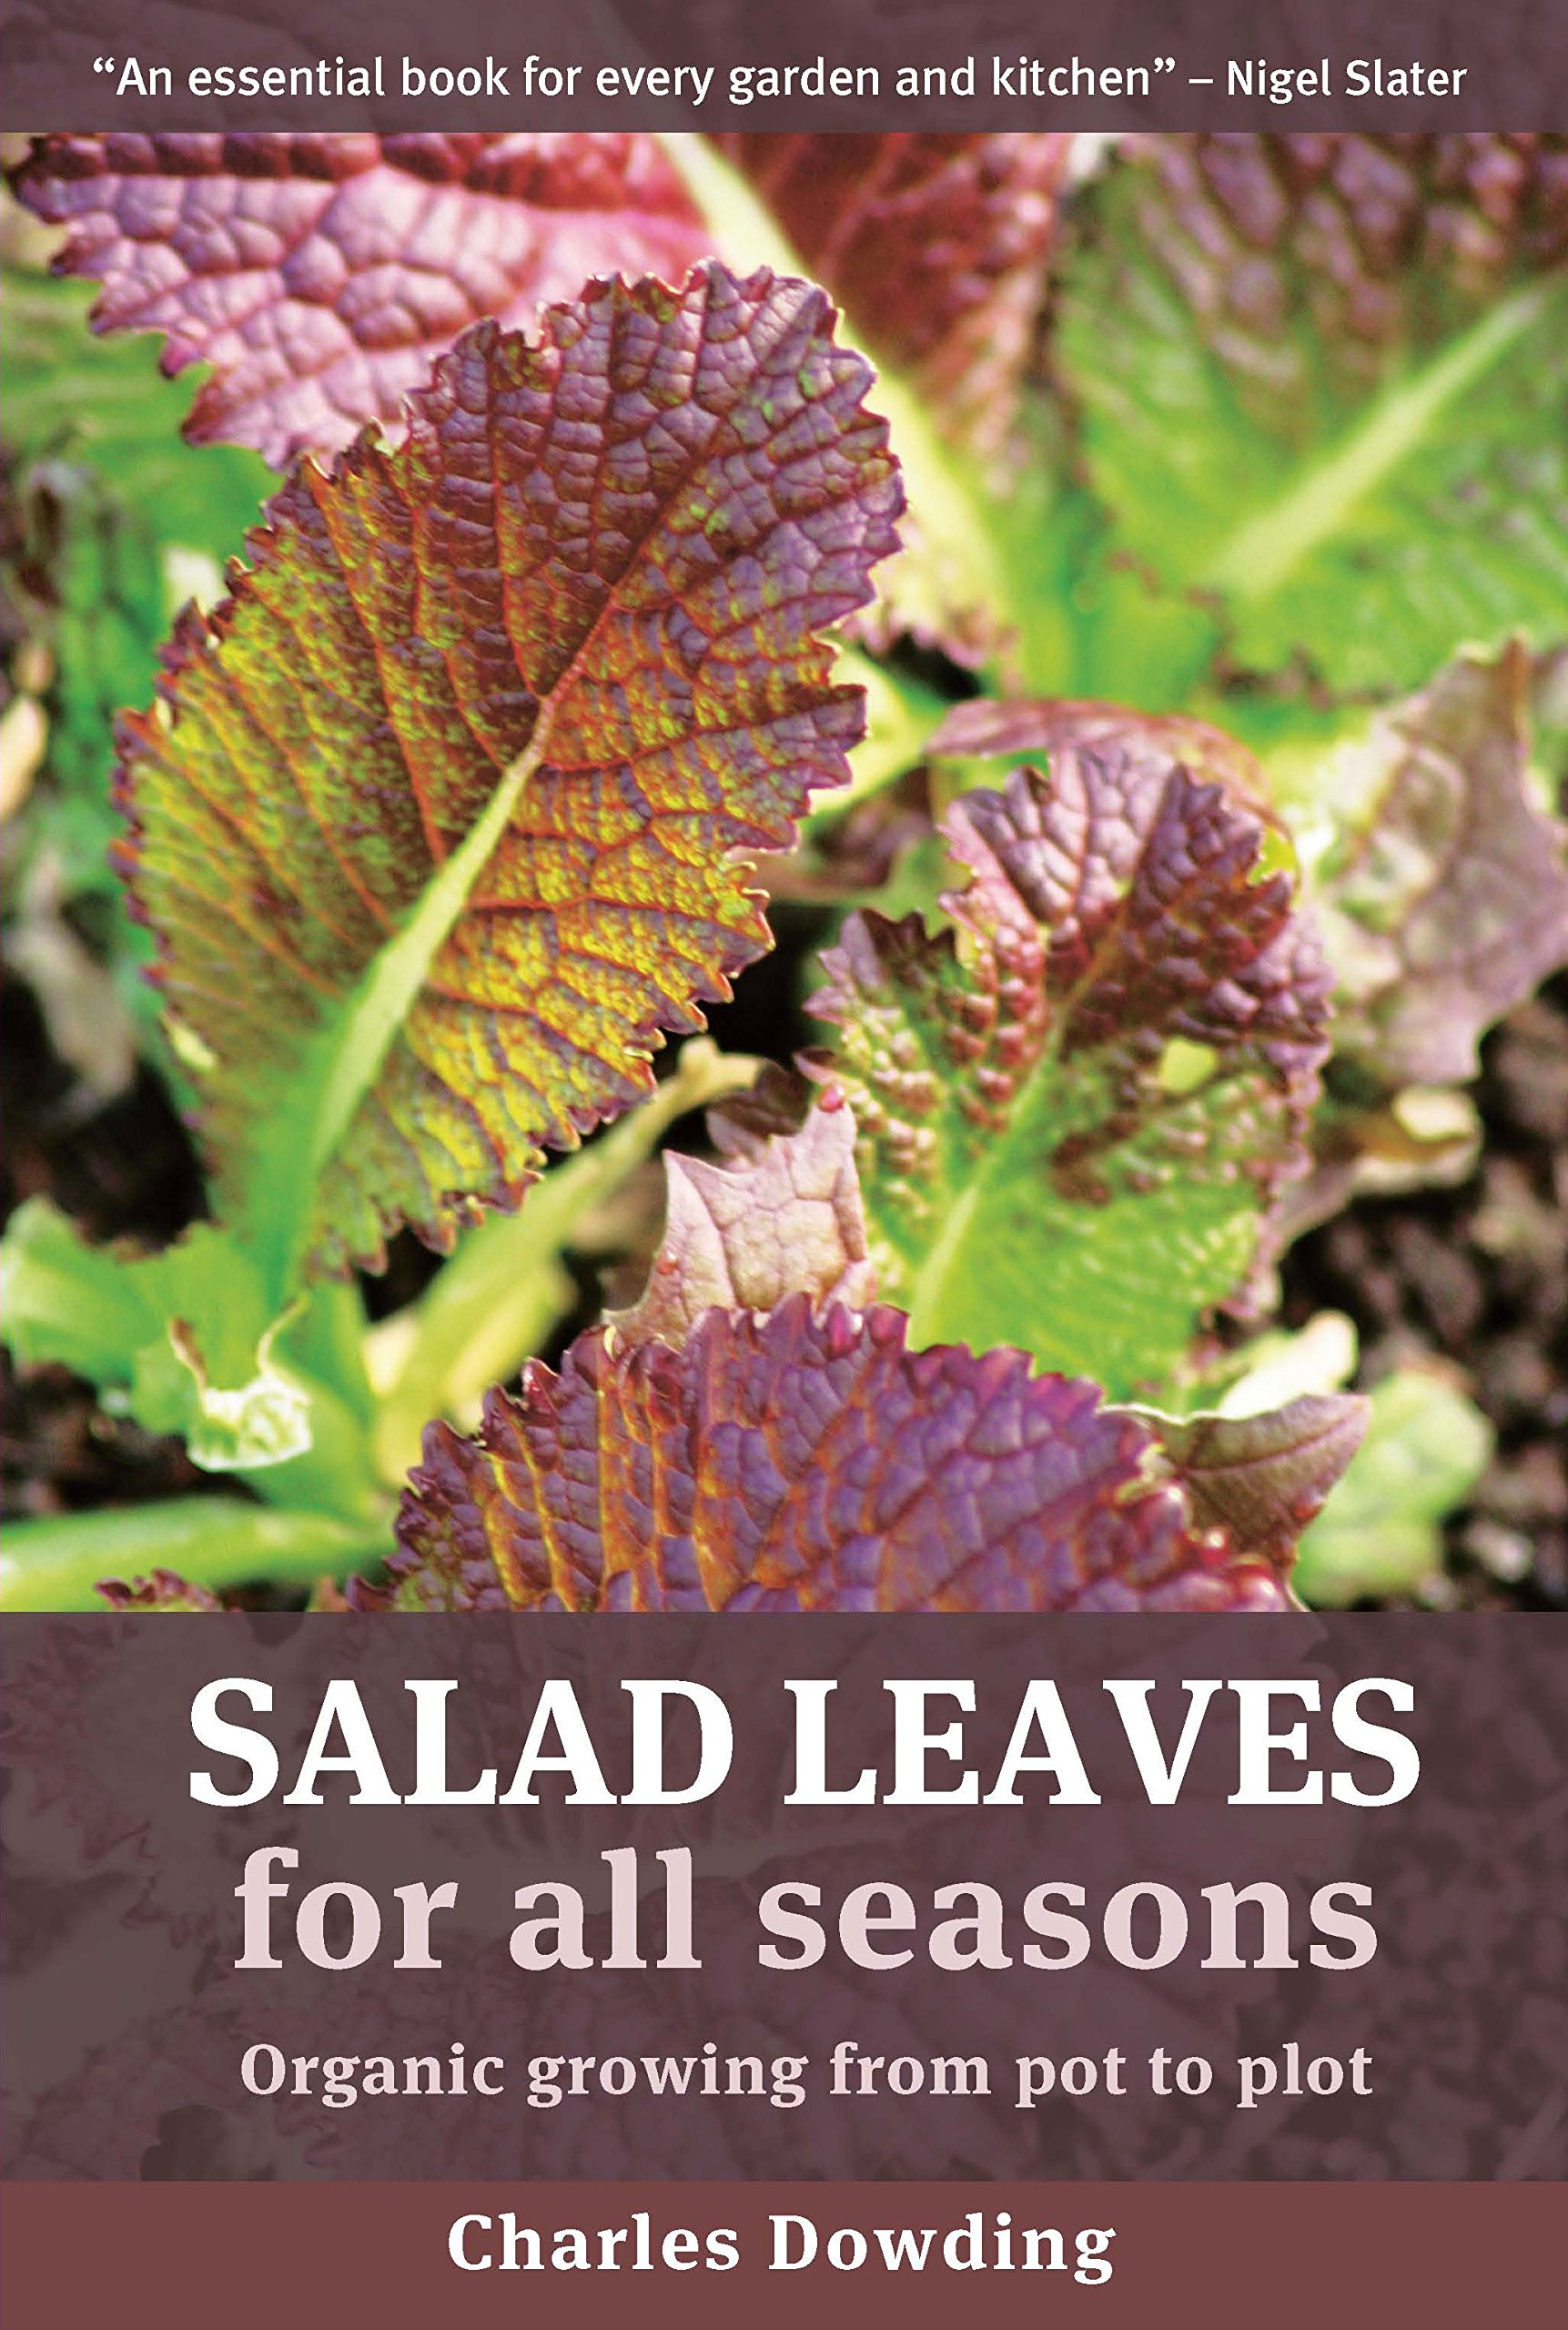 Salad Leaves For All Seasons: Organic Growing from Pot to Plot